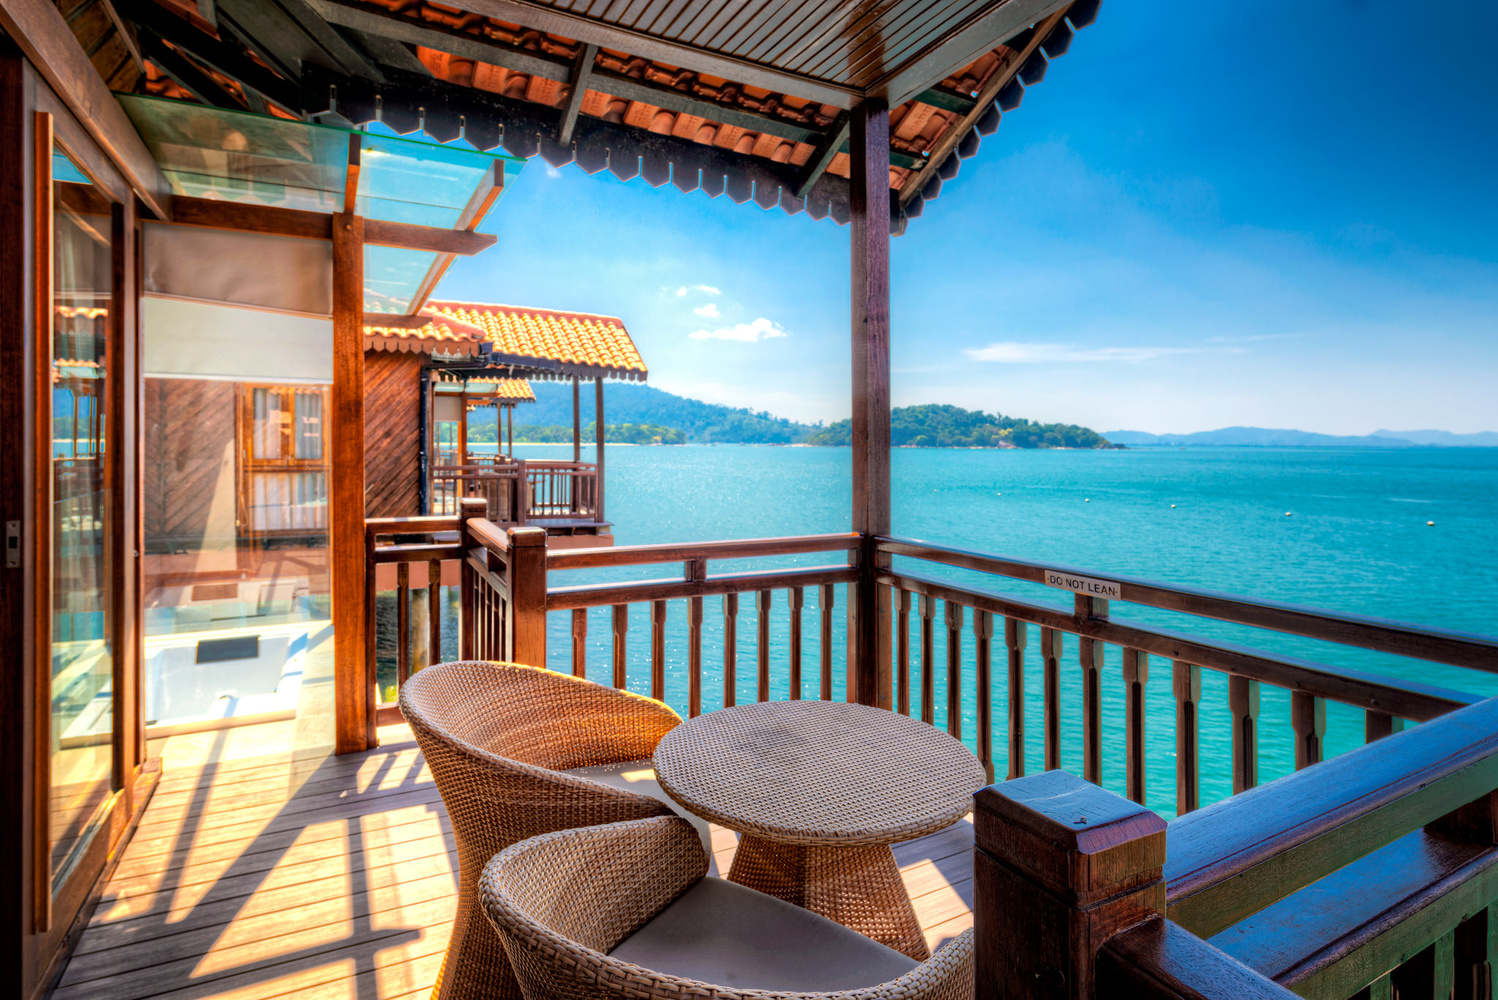 Chalet on water in Langkawi Island Resort, Malaysia by Nico Trinkhaus